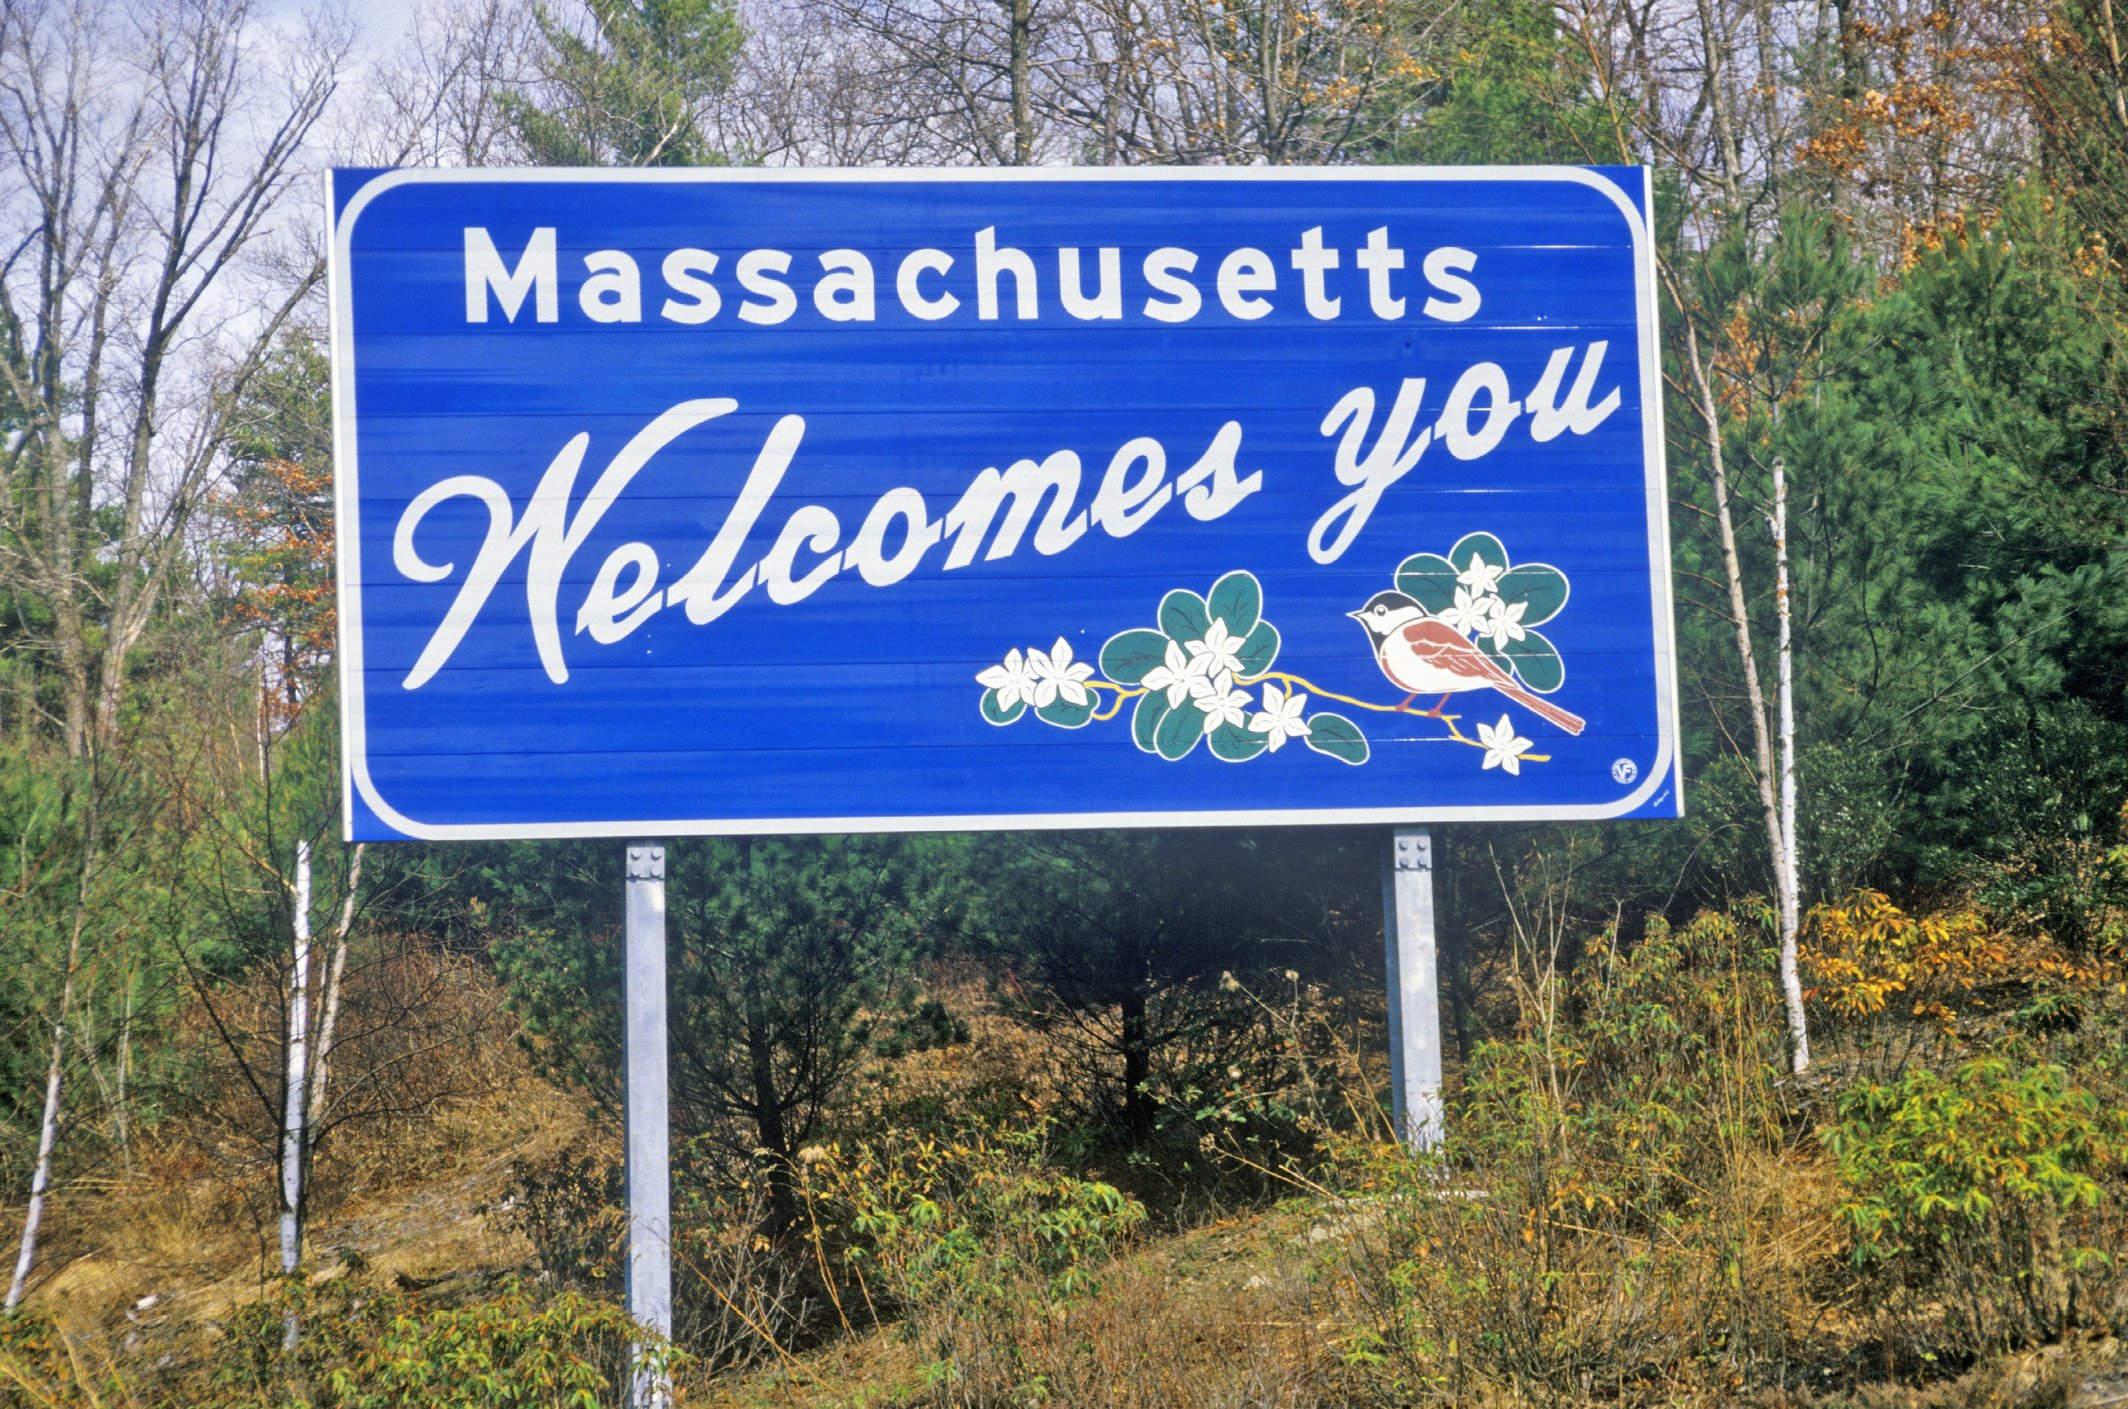 Slide 22 of 51: The Massachusetts sign showcases a chickadee and a mayflower, both icons of the state.